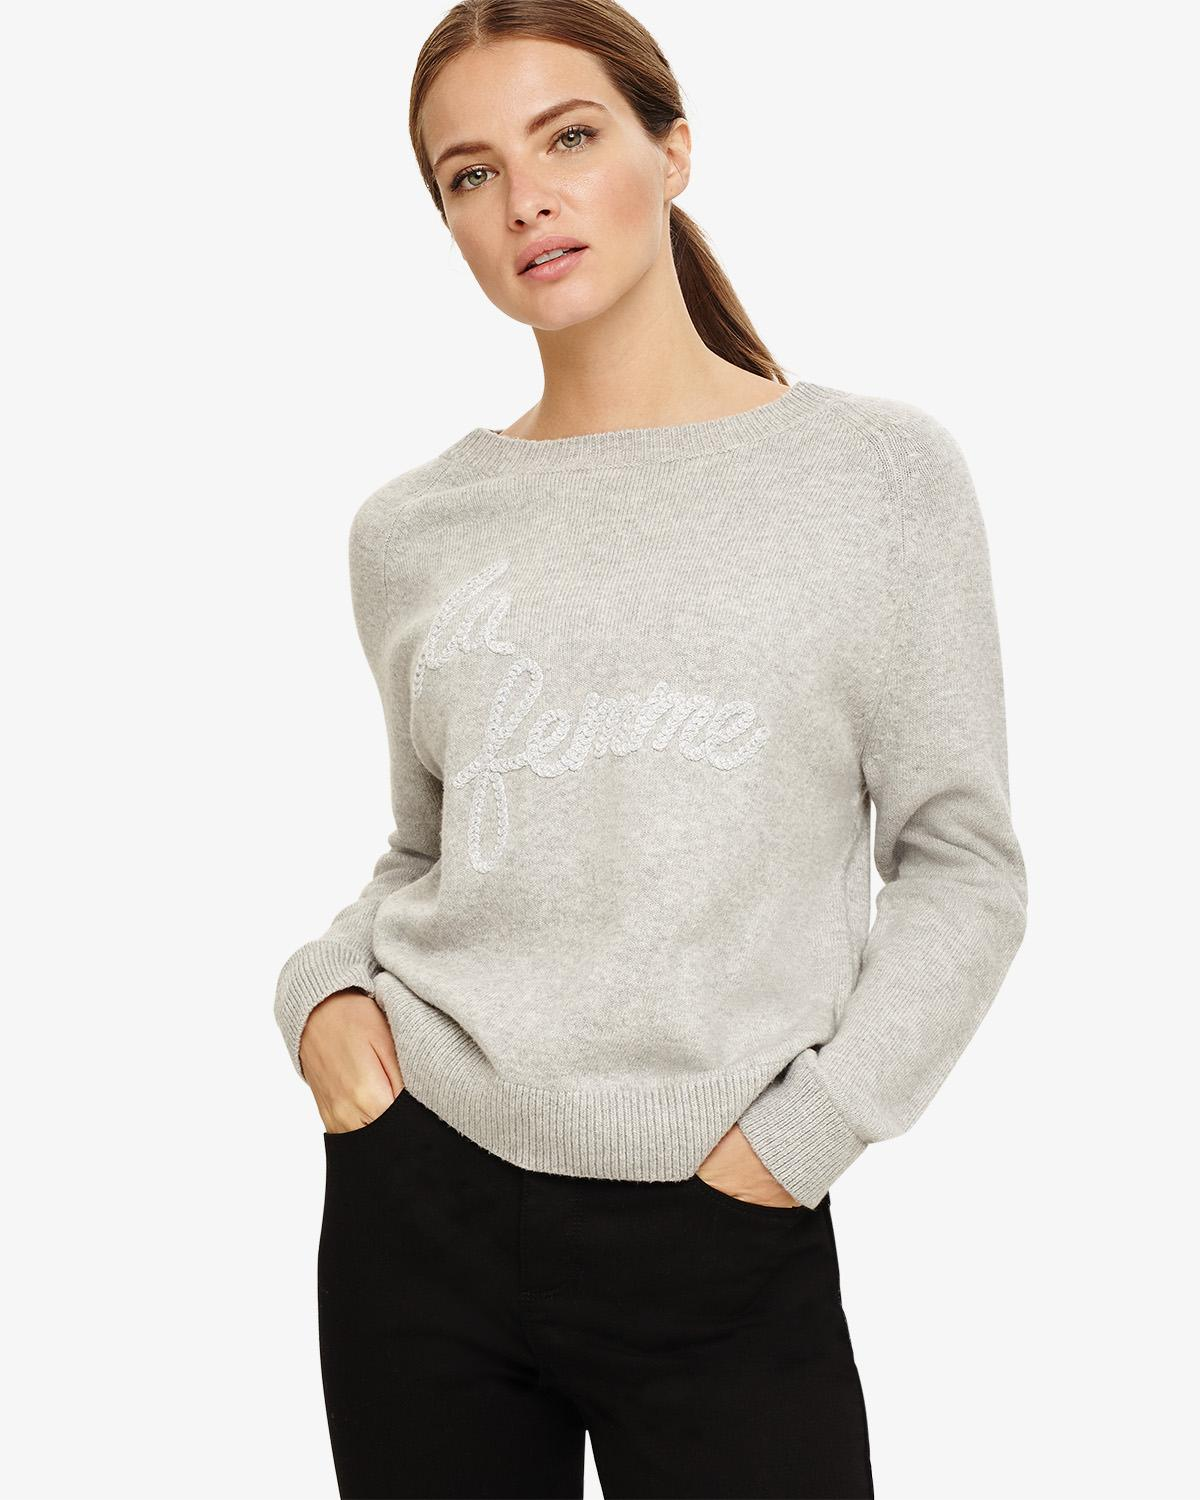 0a5c4716e73 Phase Eight Grey La Femme Logo Knit Jumper in Gray - Save 16% - Lyst